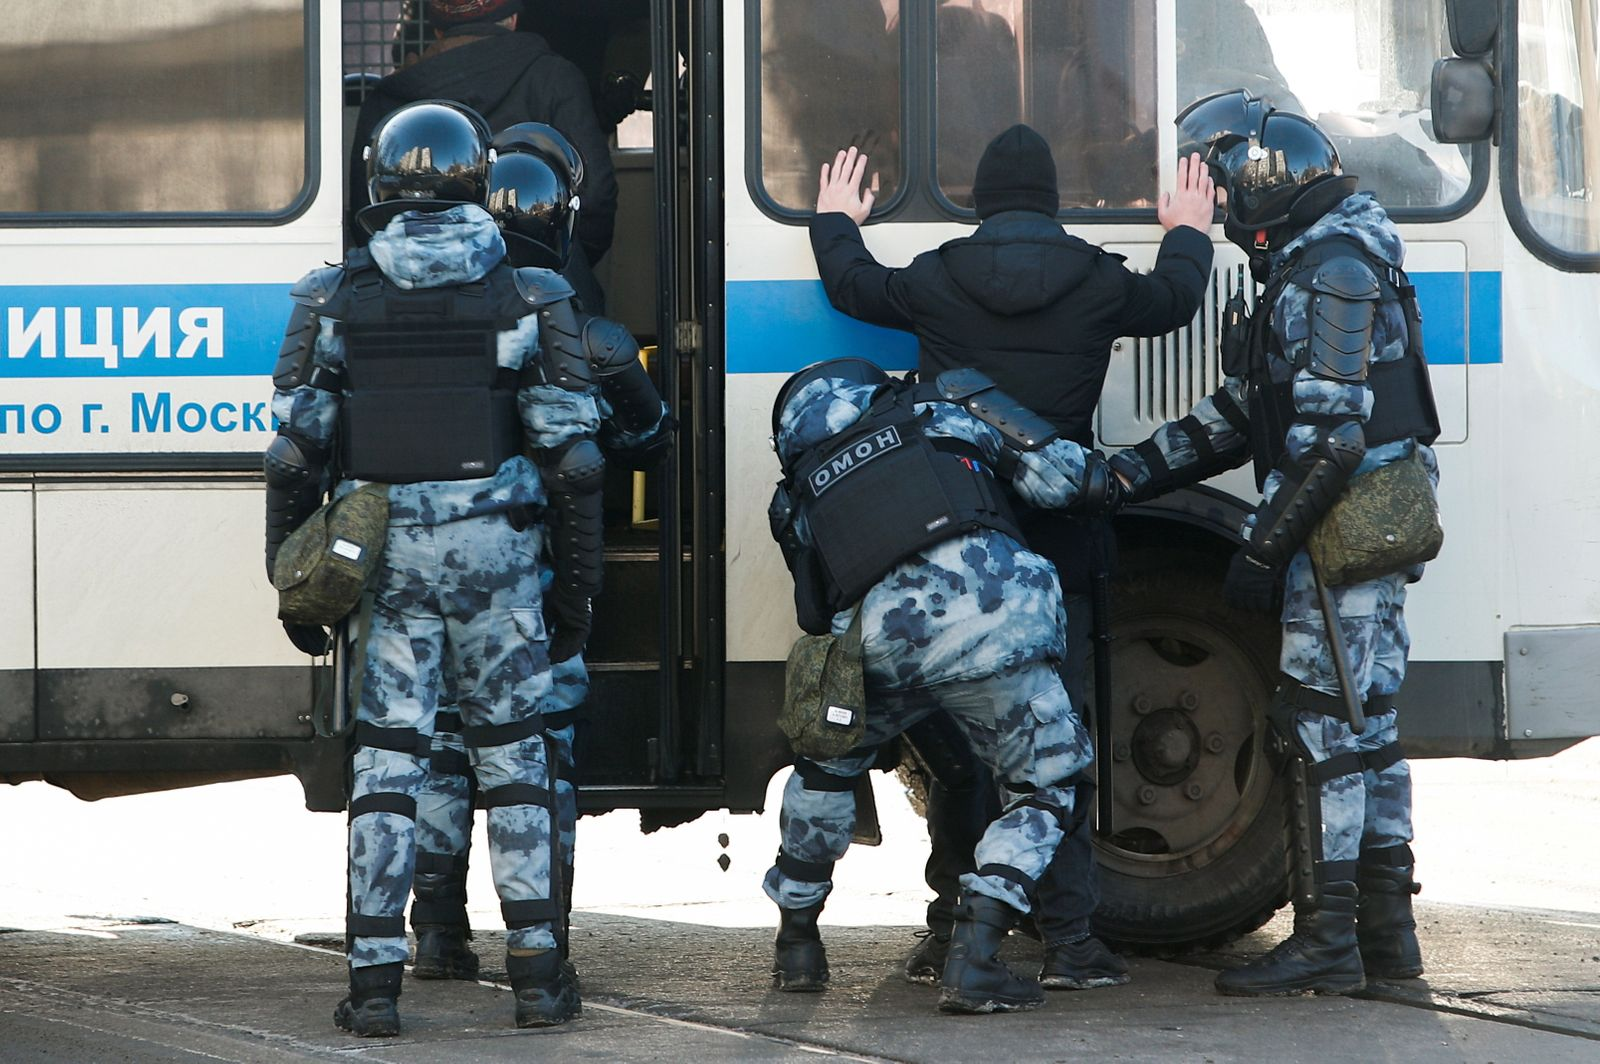 Law enforcement officers detain a man near a court building during a hearing in case of Russian opposition leader Alexei Navalny in Moscow